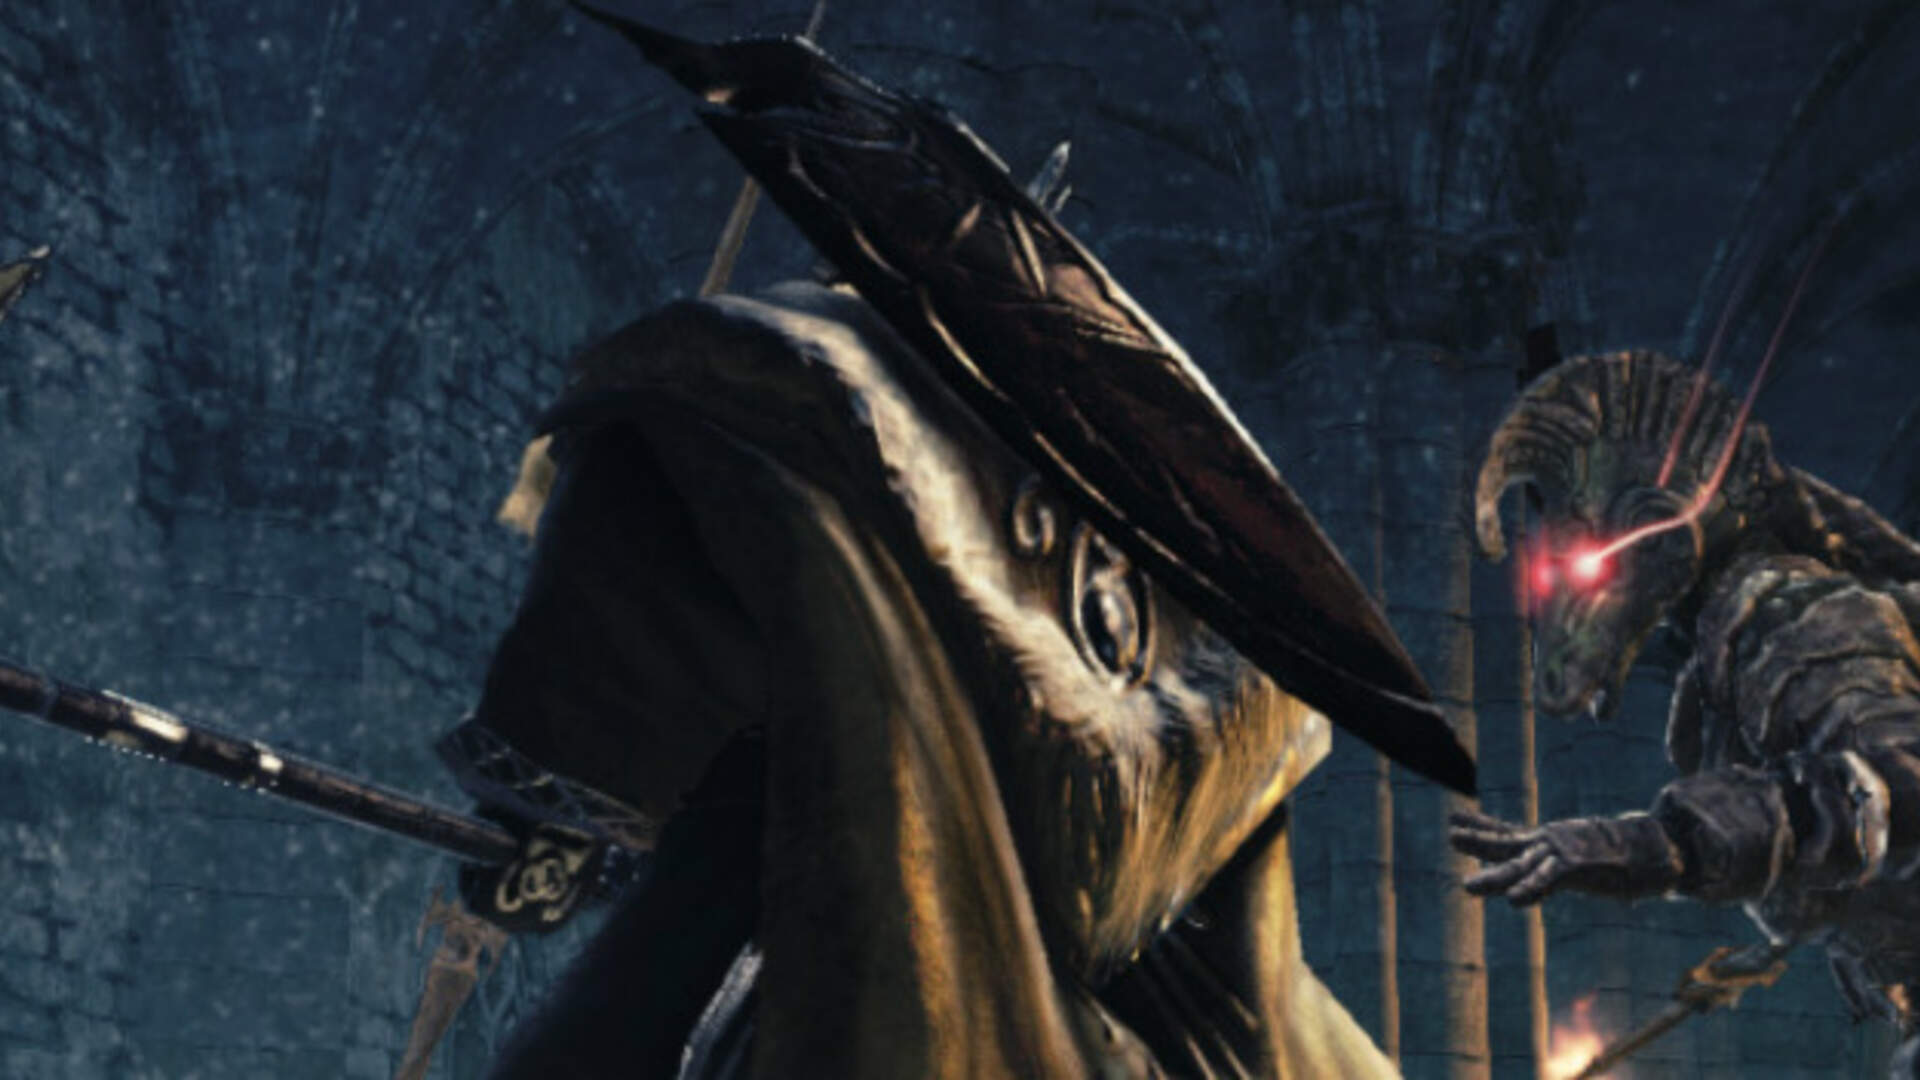 Dark Souls 2 PC Preview: You Can't Go Back